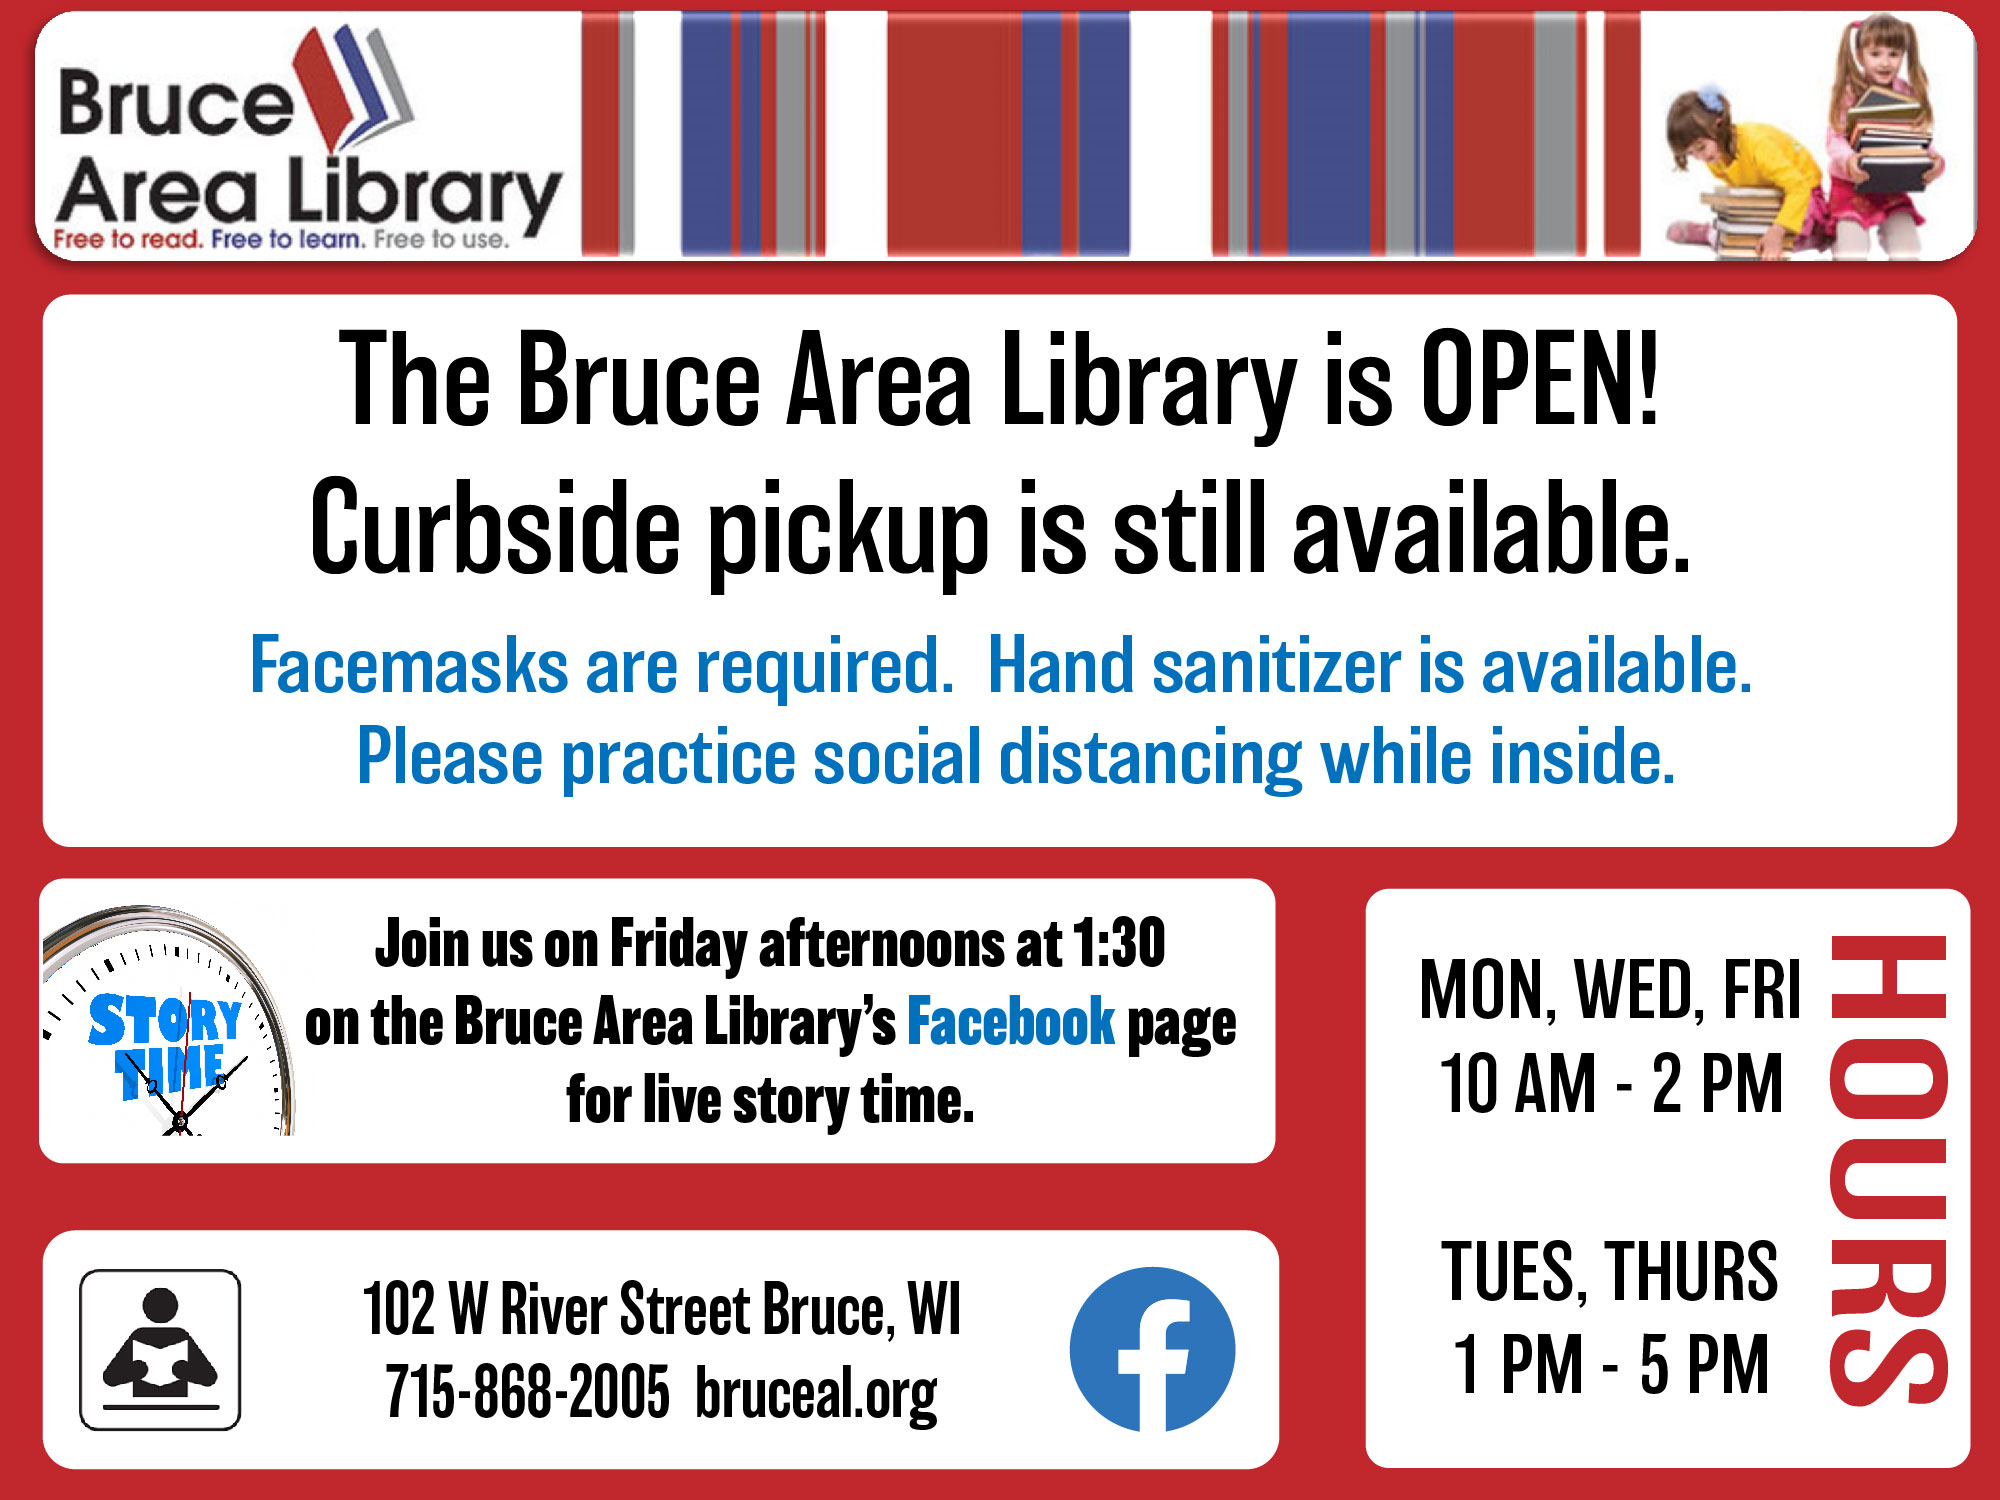 Bruce Area Library